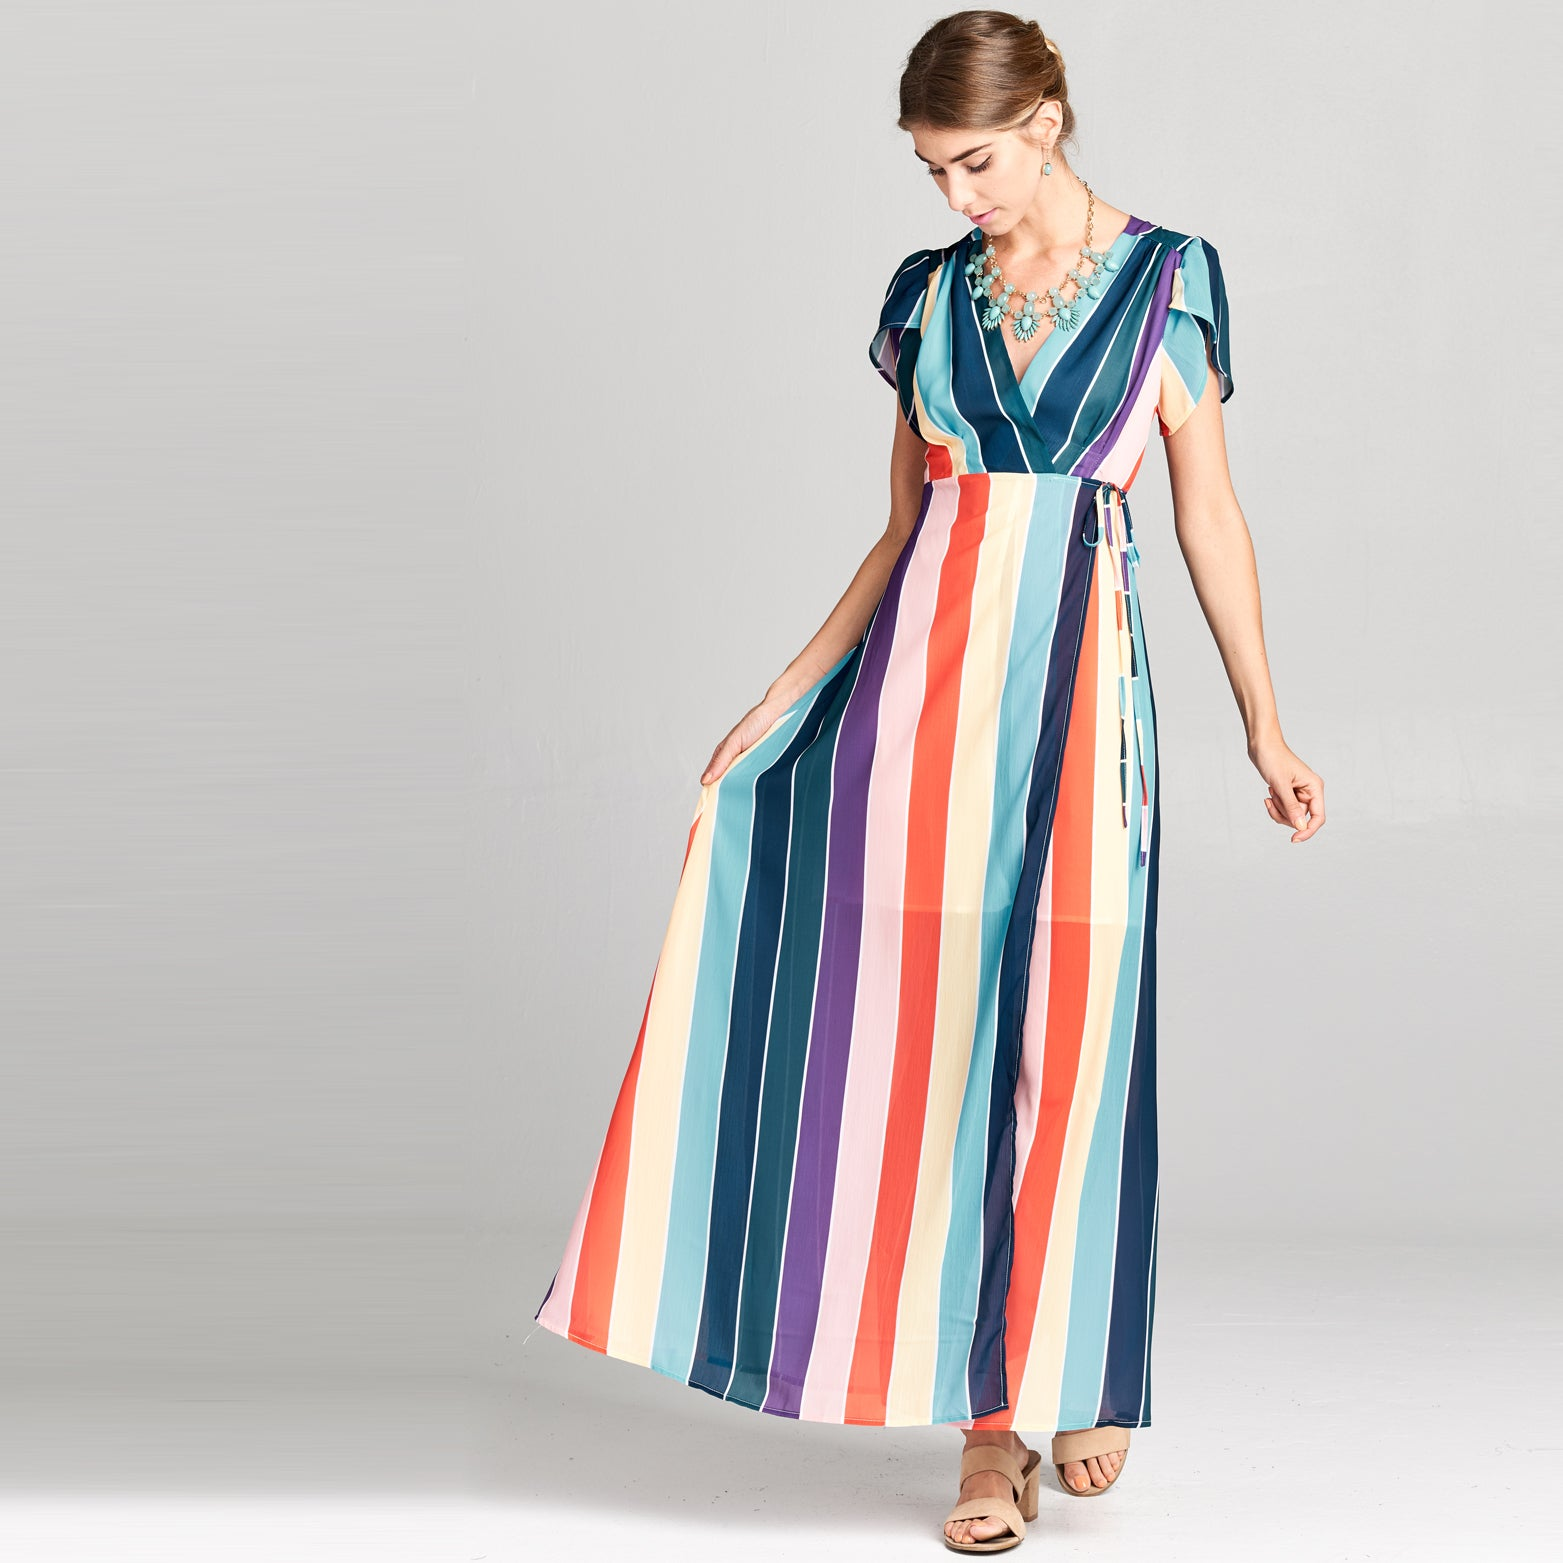 Vivid Rainbow Maxi Dress - Love, Kuza